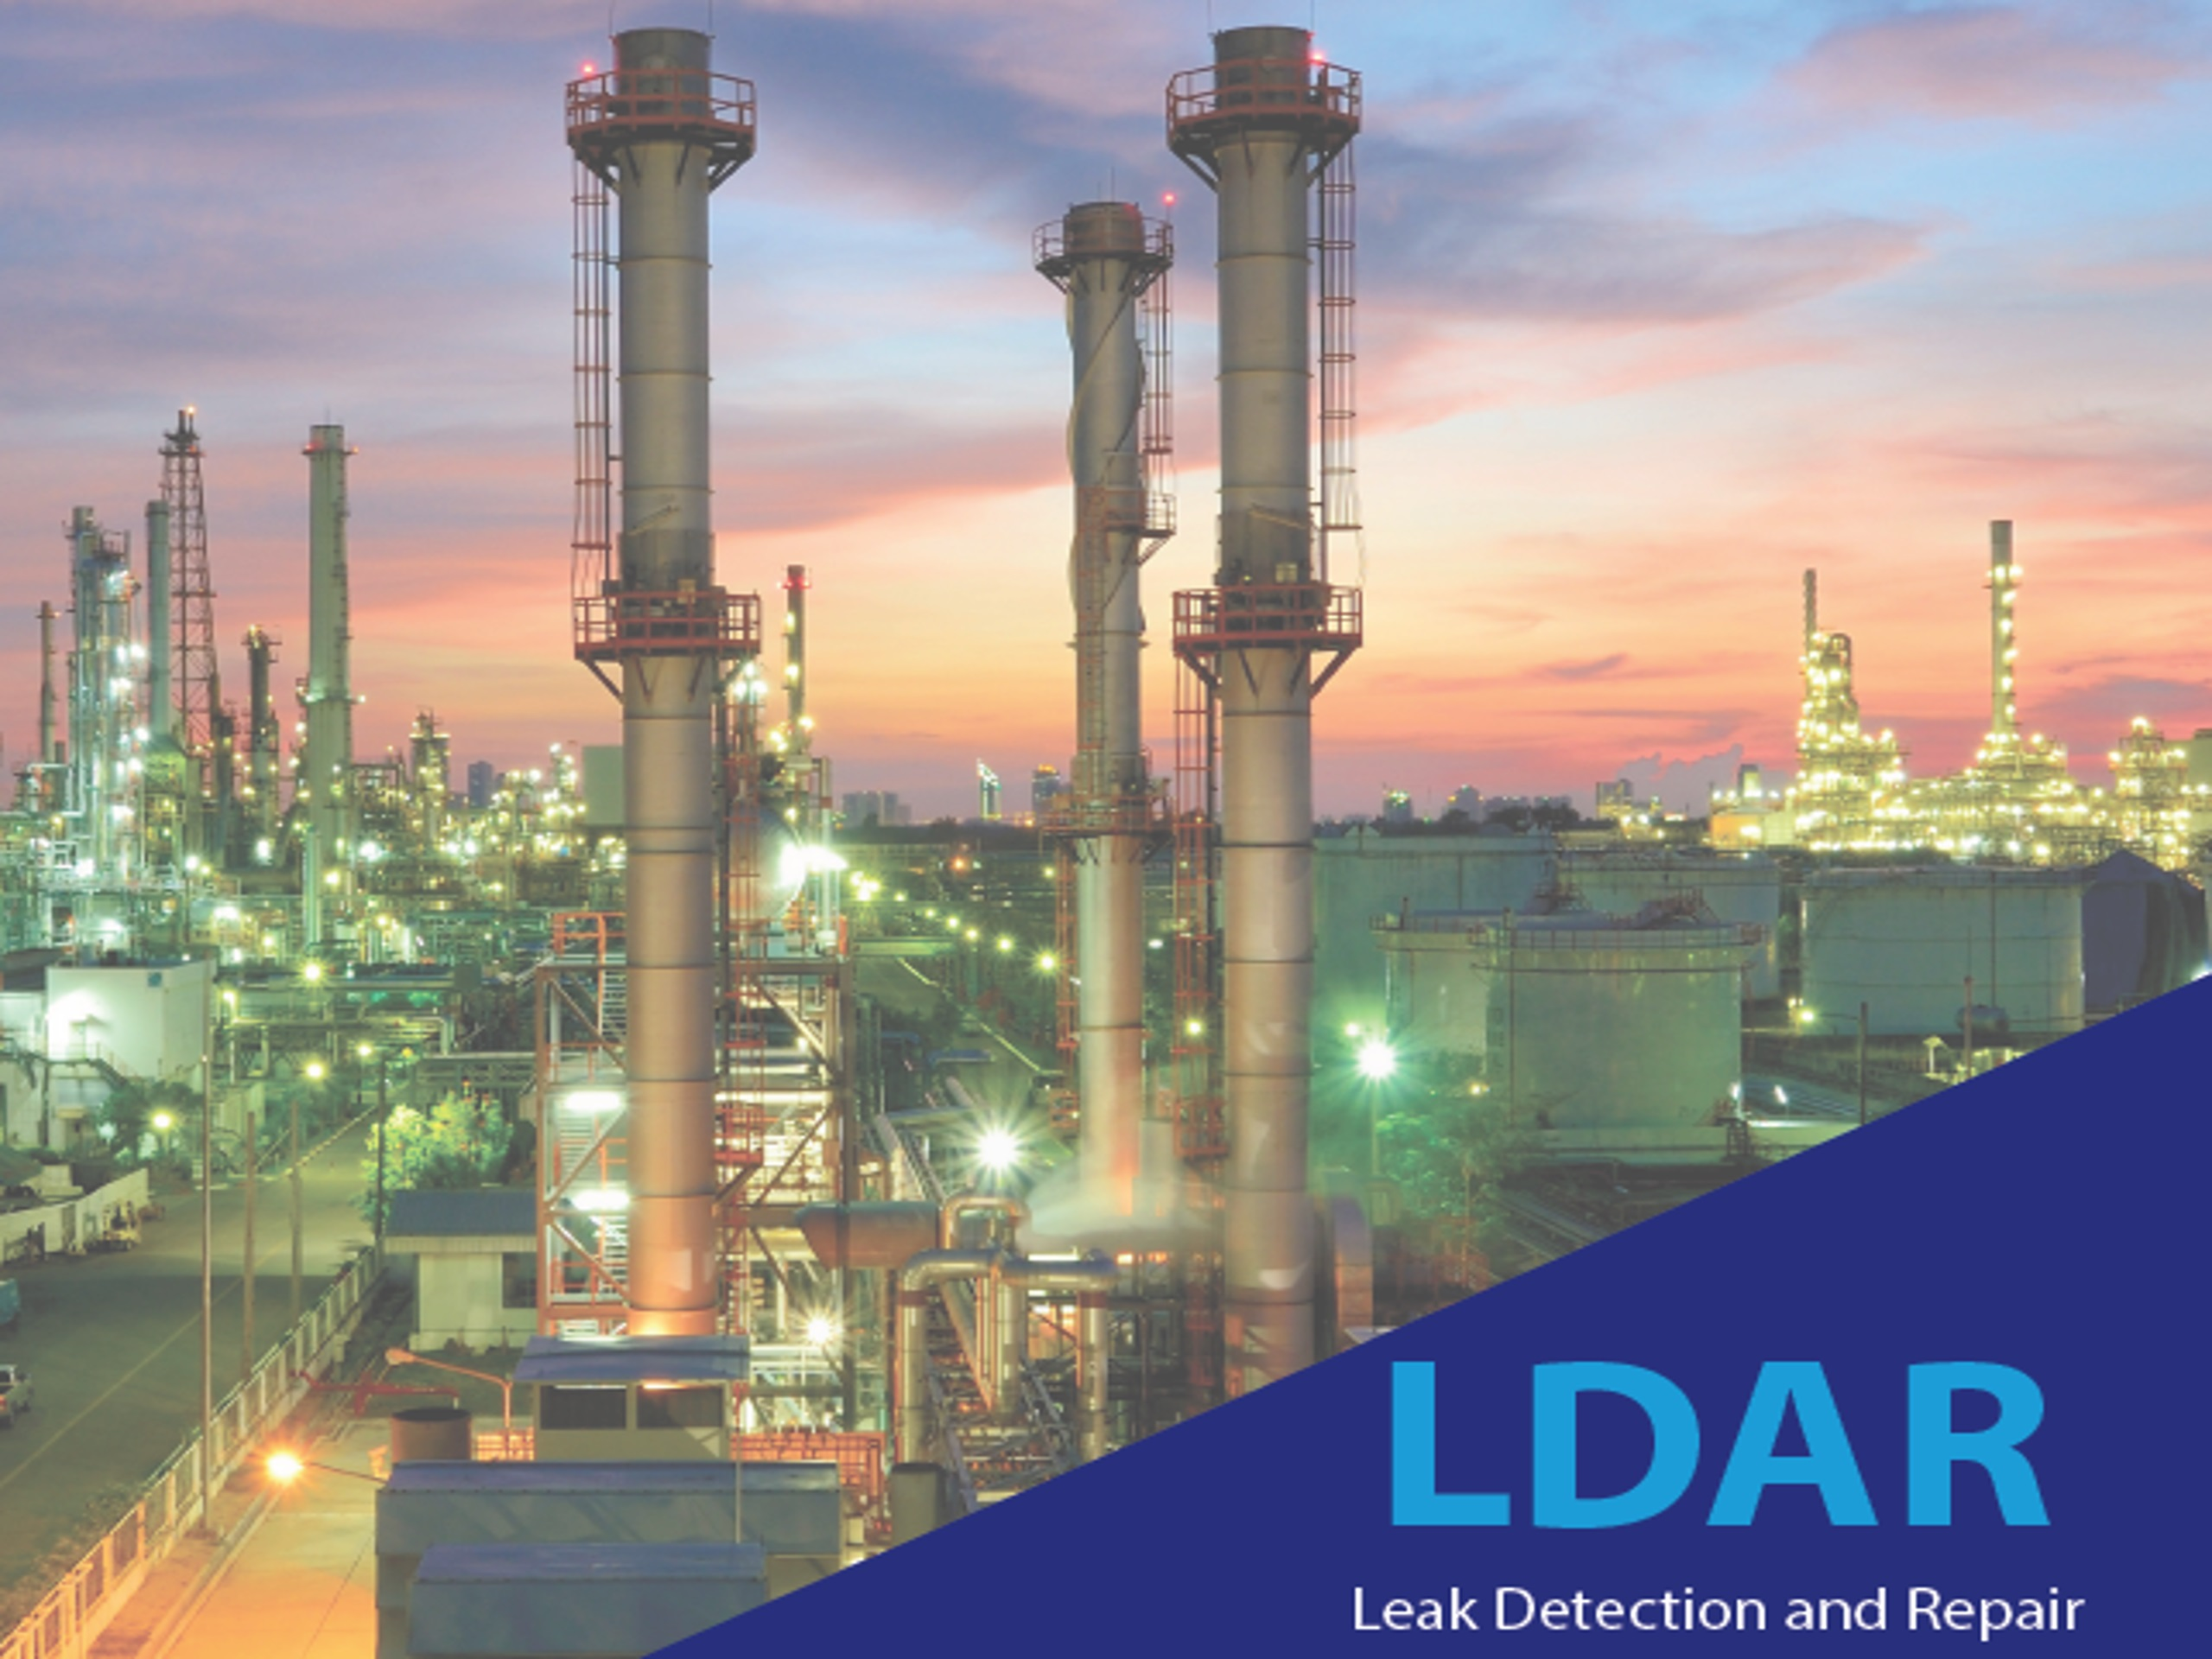 WSG Enviro publish new LDAR brochure